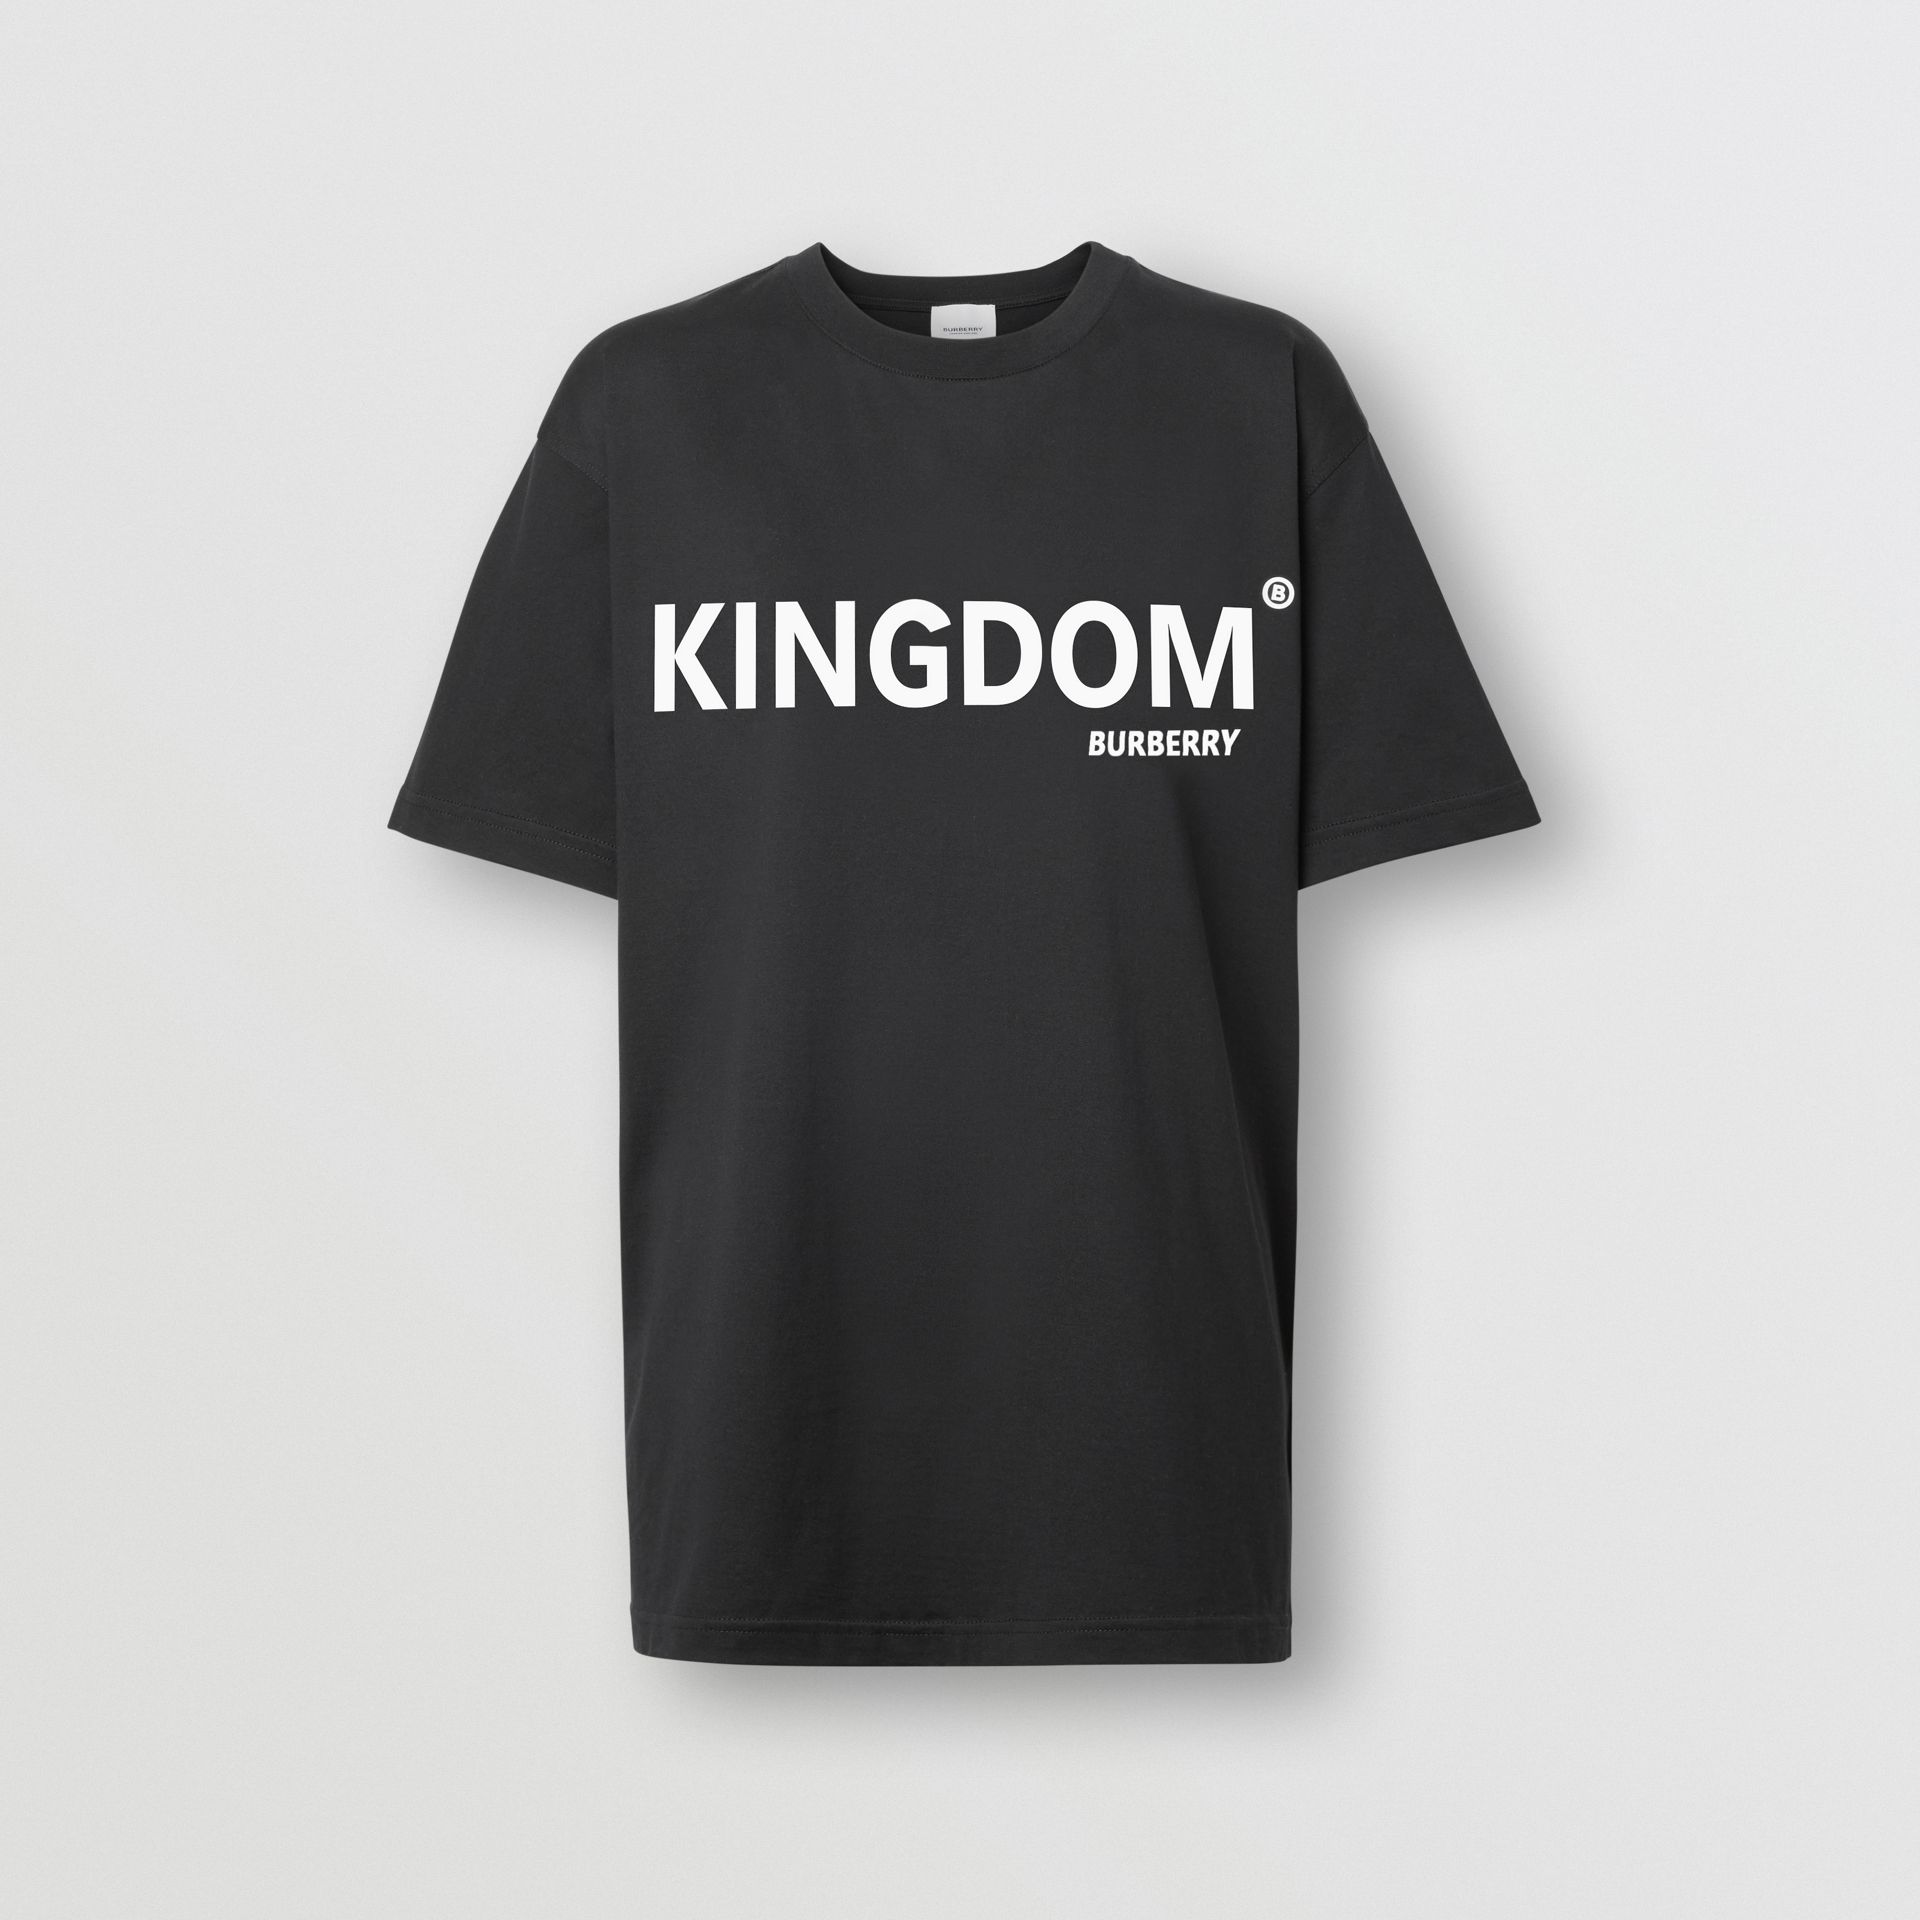 Kingdom Print Cotton Oversized T-shirt in Black - Women | Burberry United States - gallery image 3